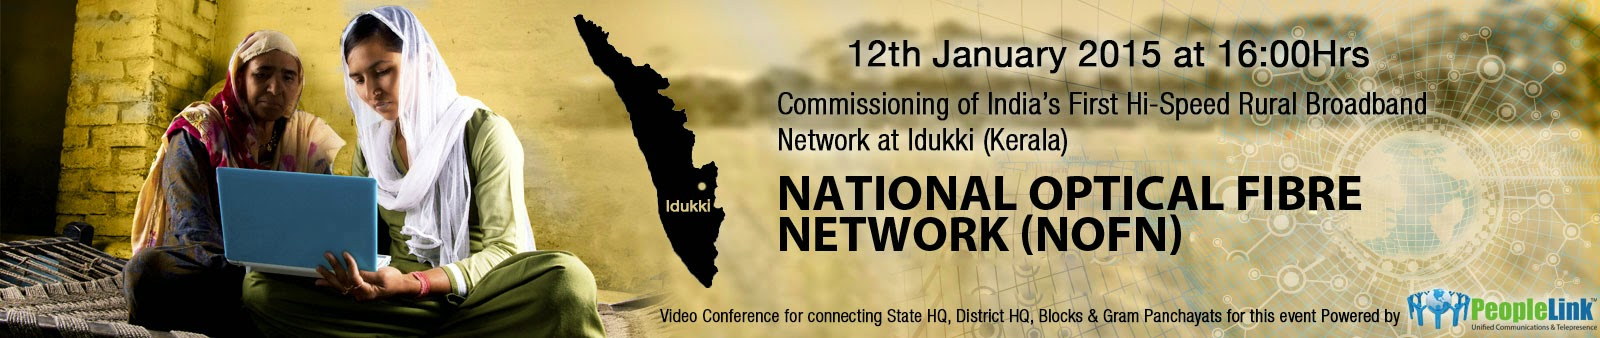 PeopleLink video conferencing powered on the National Optical Fibre Network (NOFN)